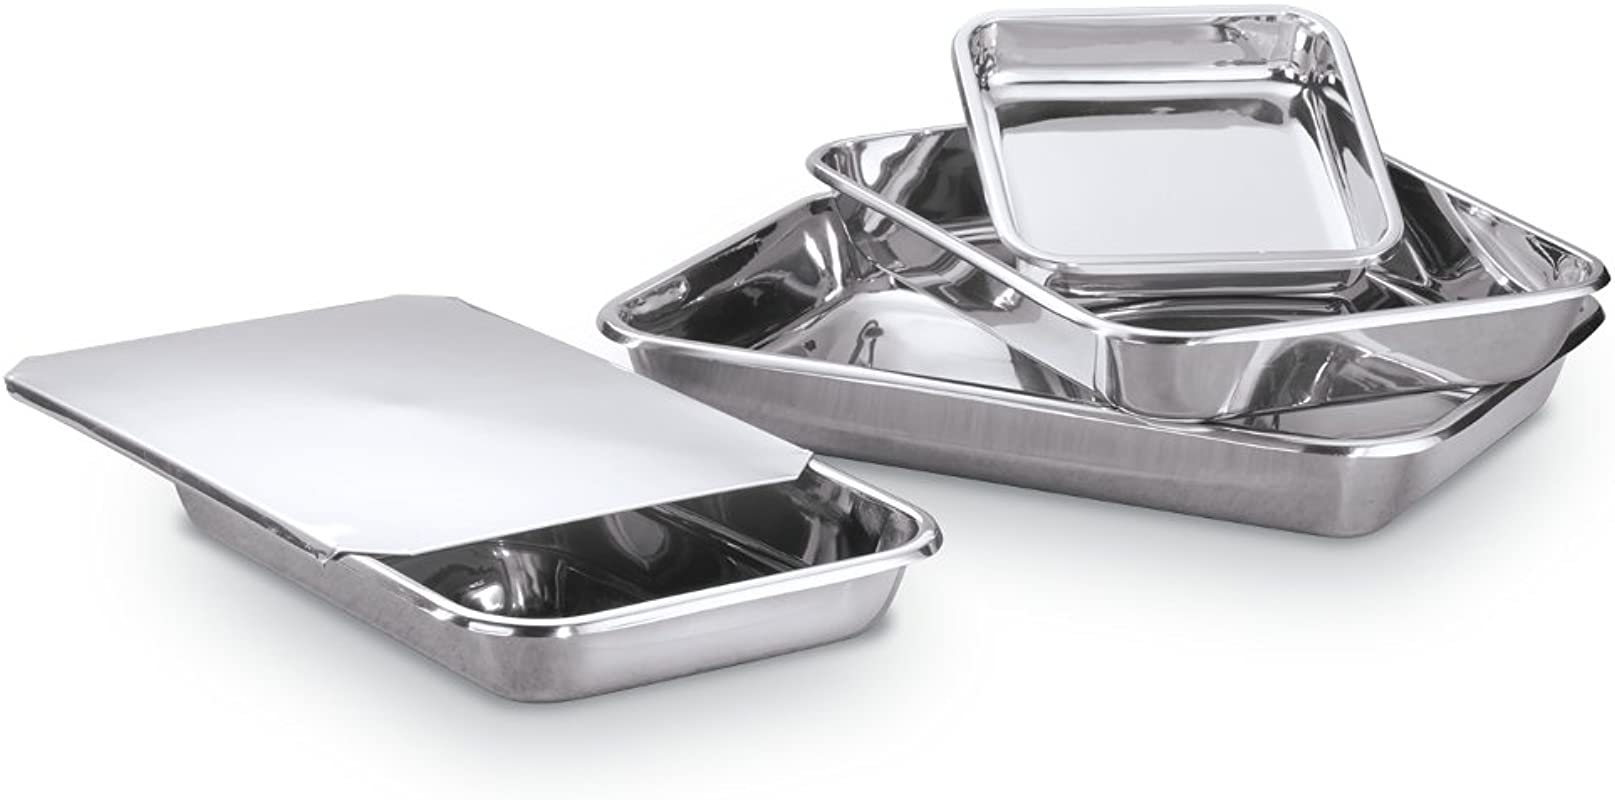 Hammer Stahl MI 138 Rectangular Bake Bakeware Set Stainless Steel